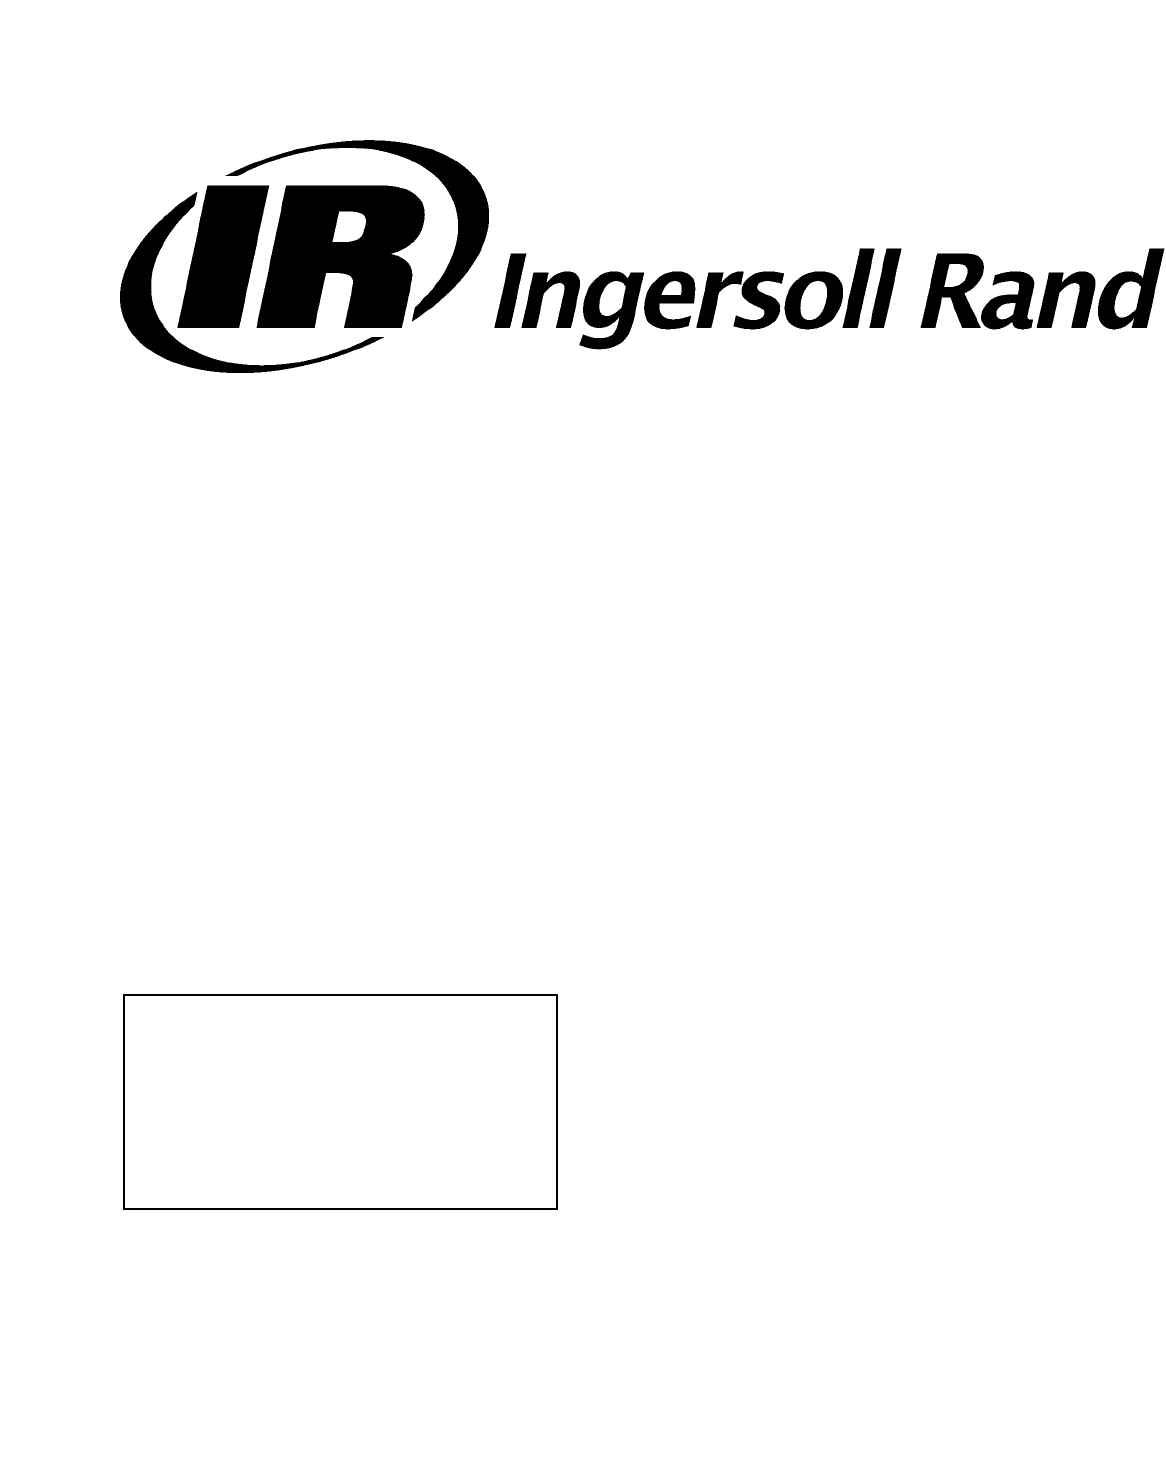 Ingersoll-Rand Air Compressor 100-200 HP/75-160 KW manual